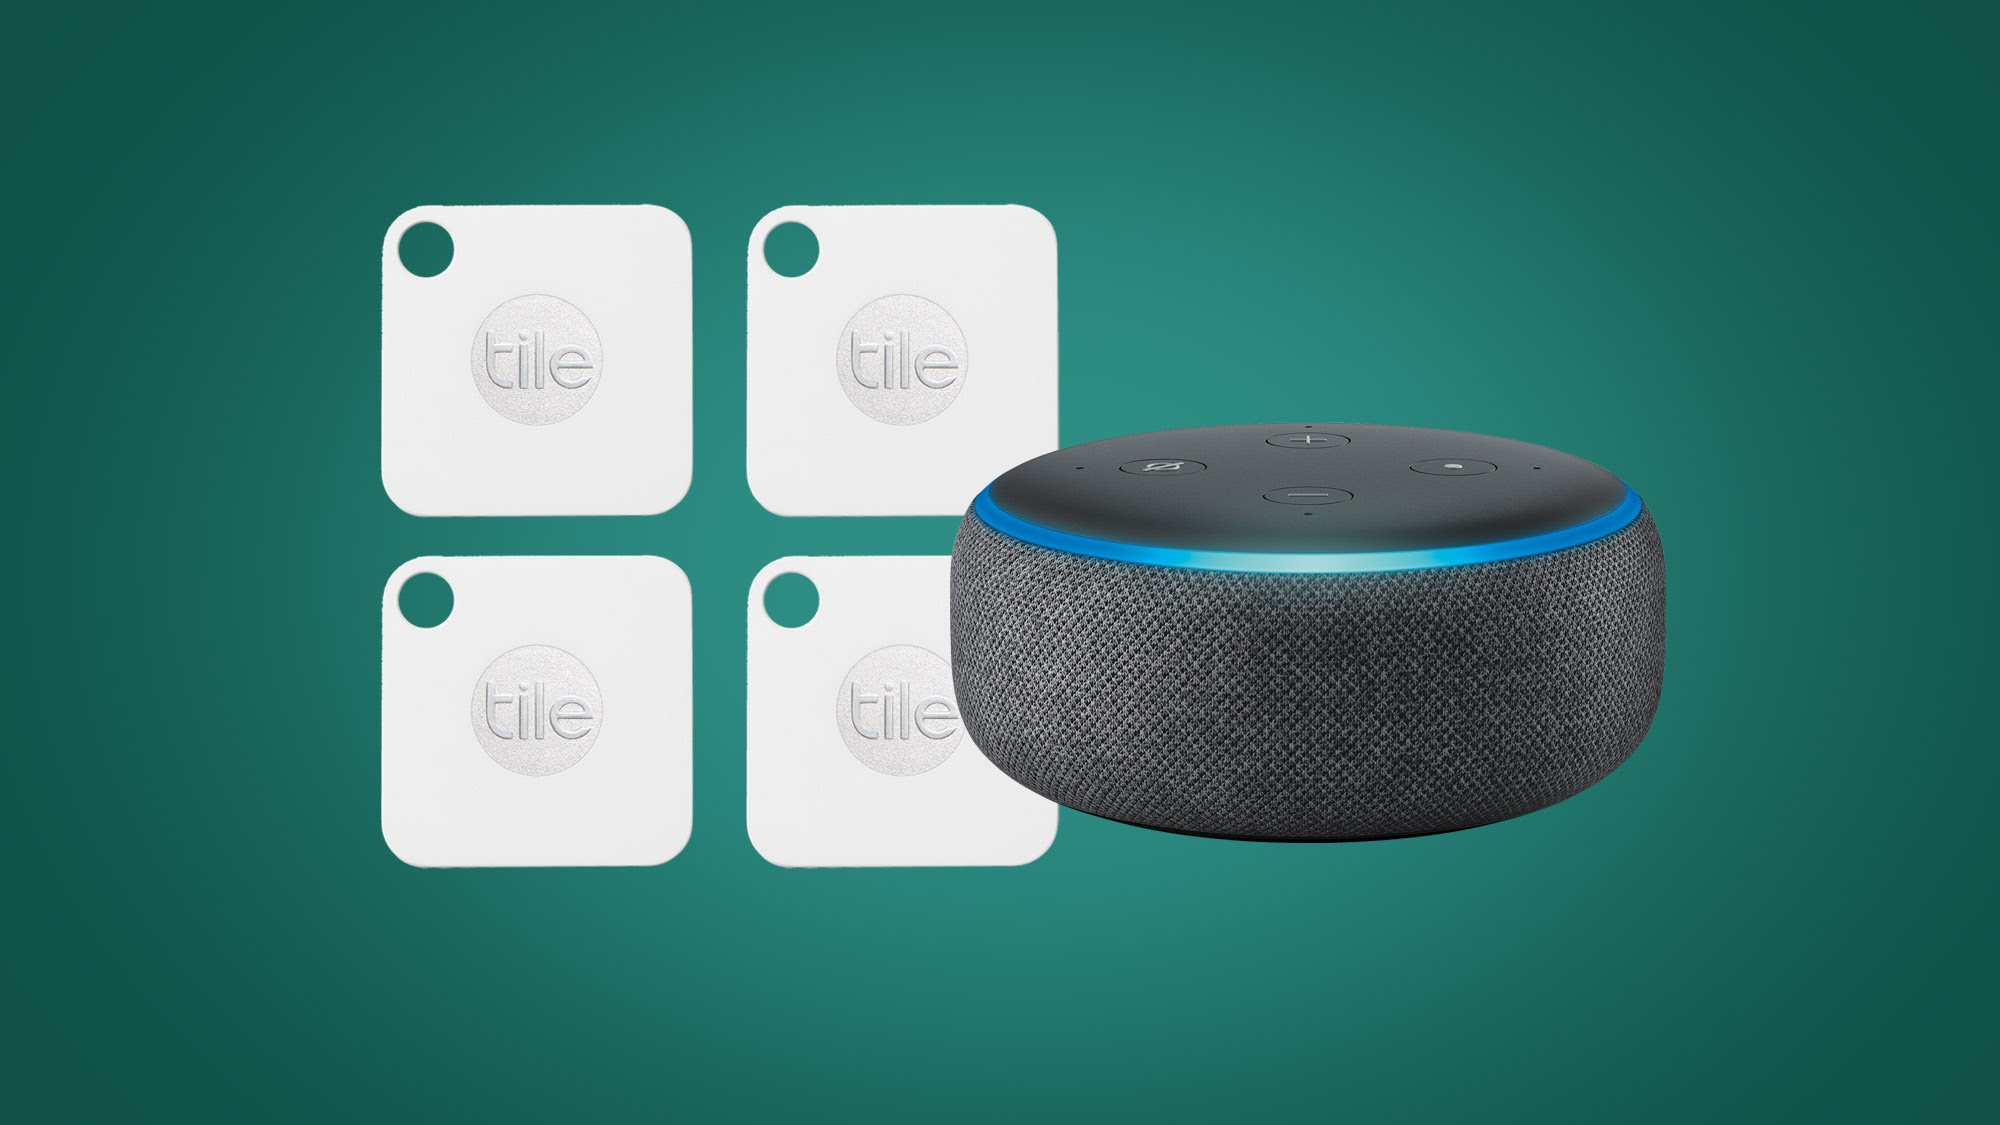 Get a free Echo Dot with a Tile tracker ahead of Amazon's Black Friday sale